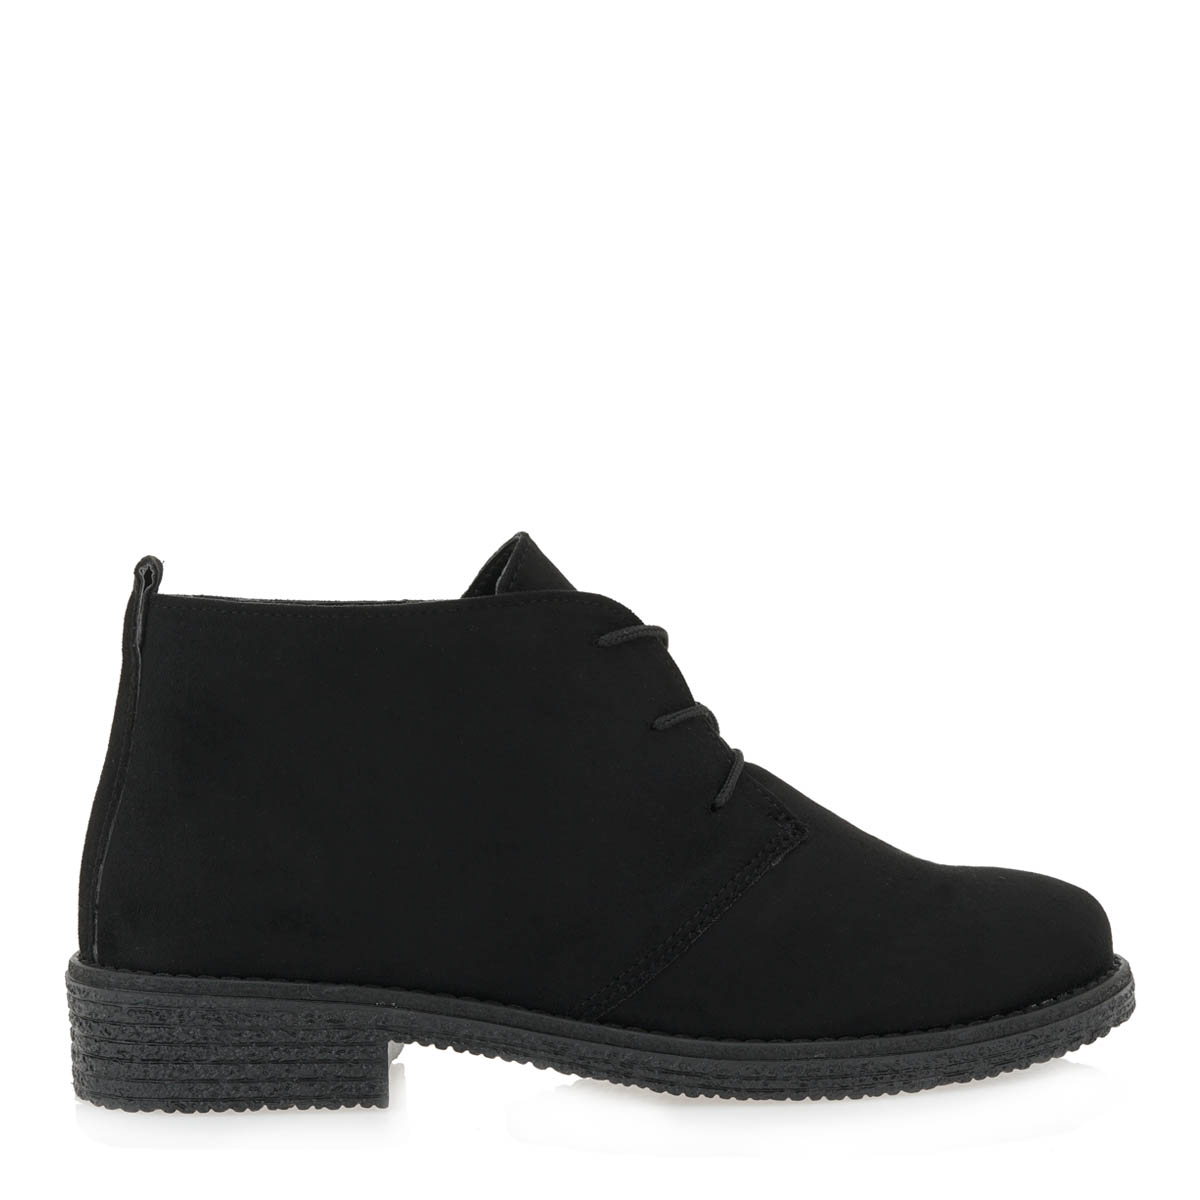 ANKLE BOOTS σχέδιο: L392Y2002